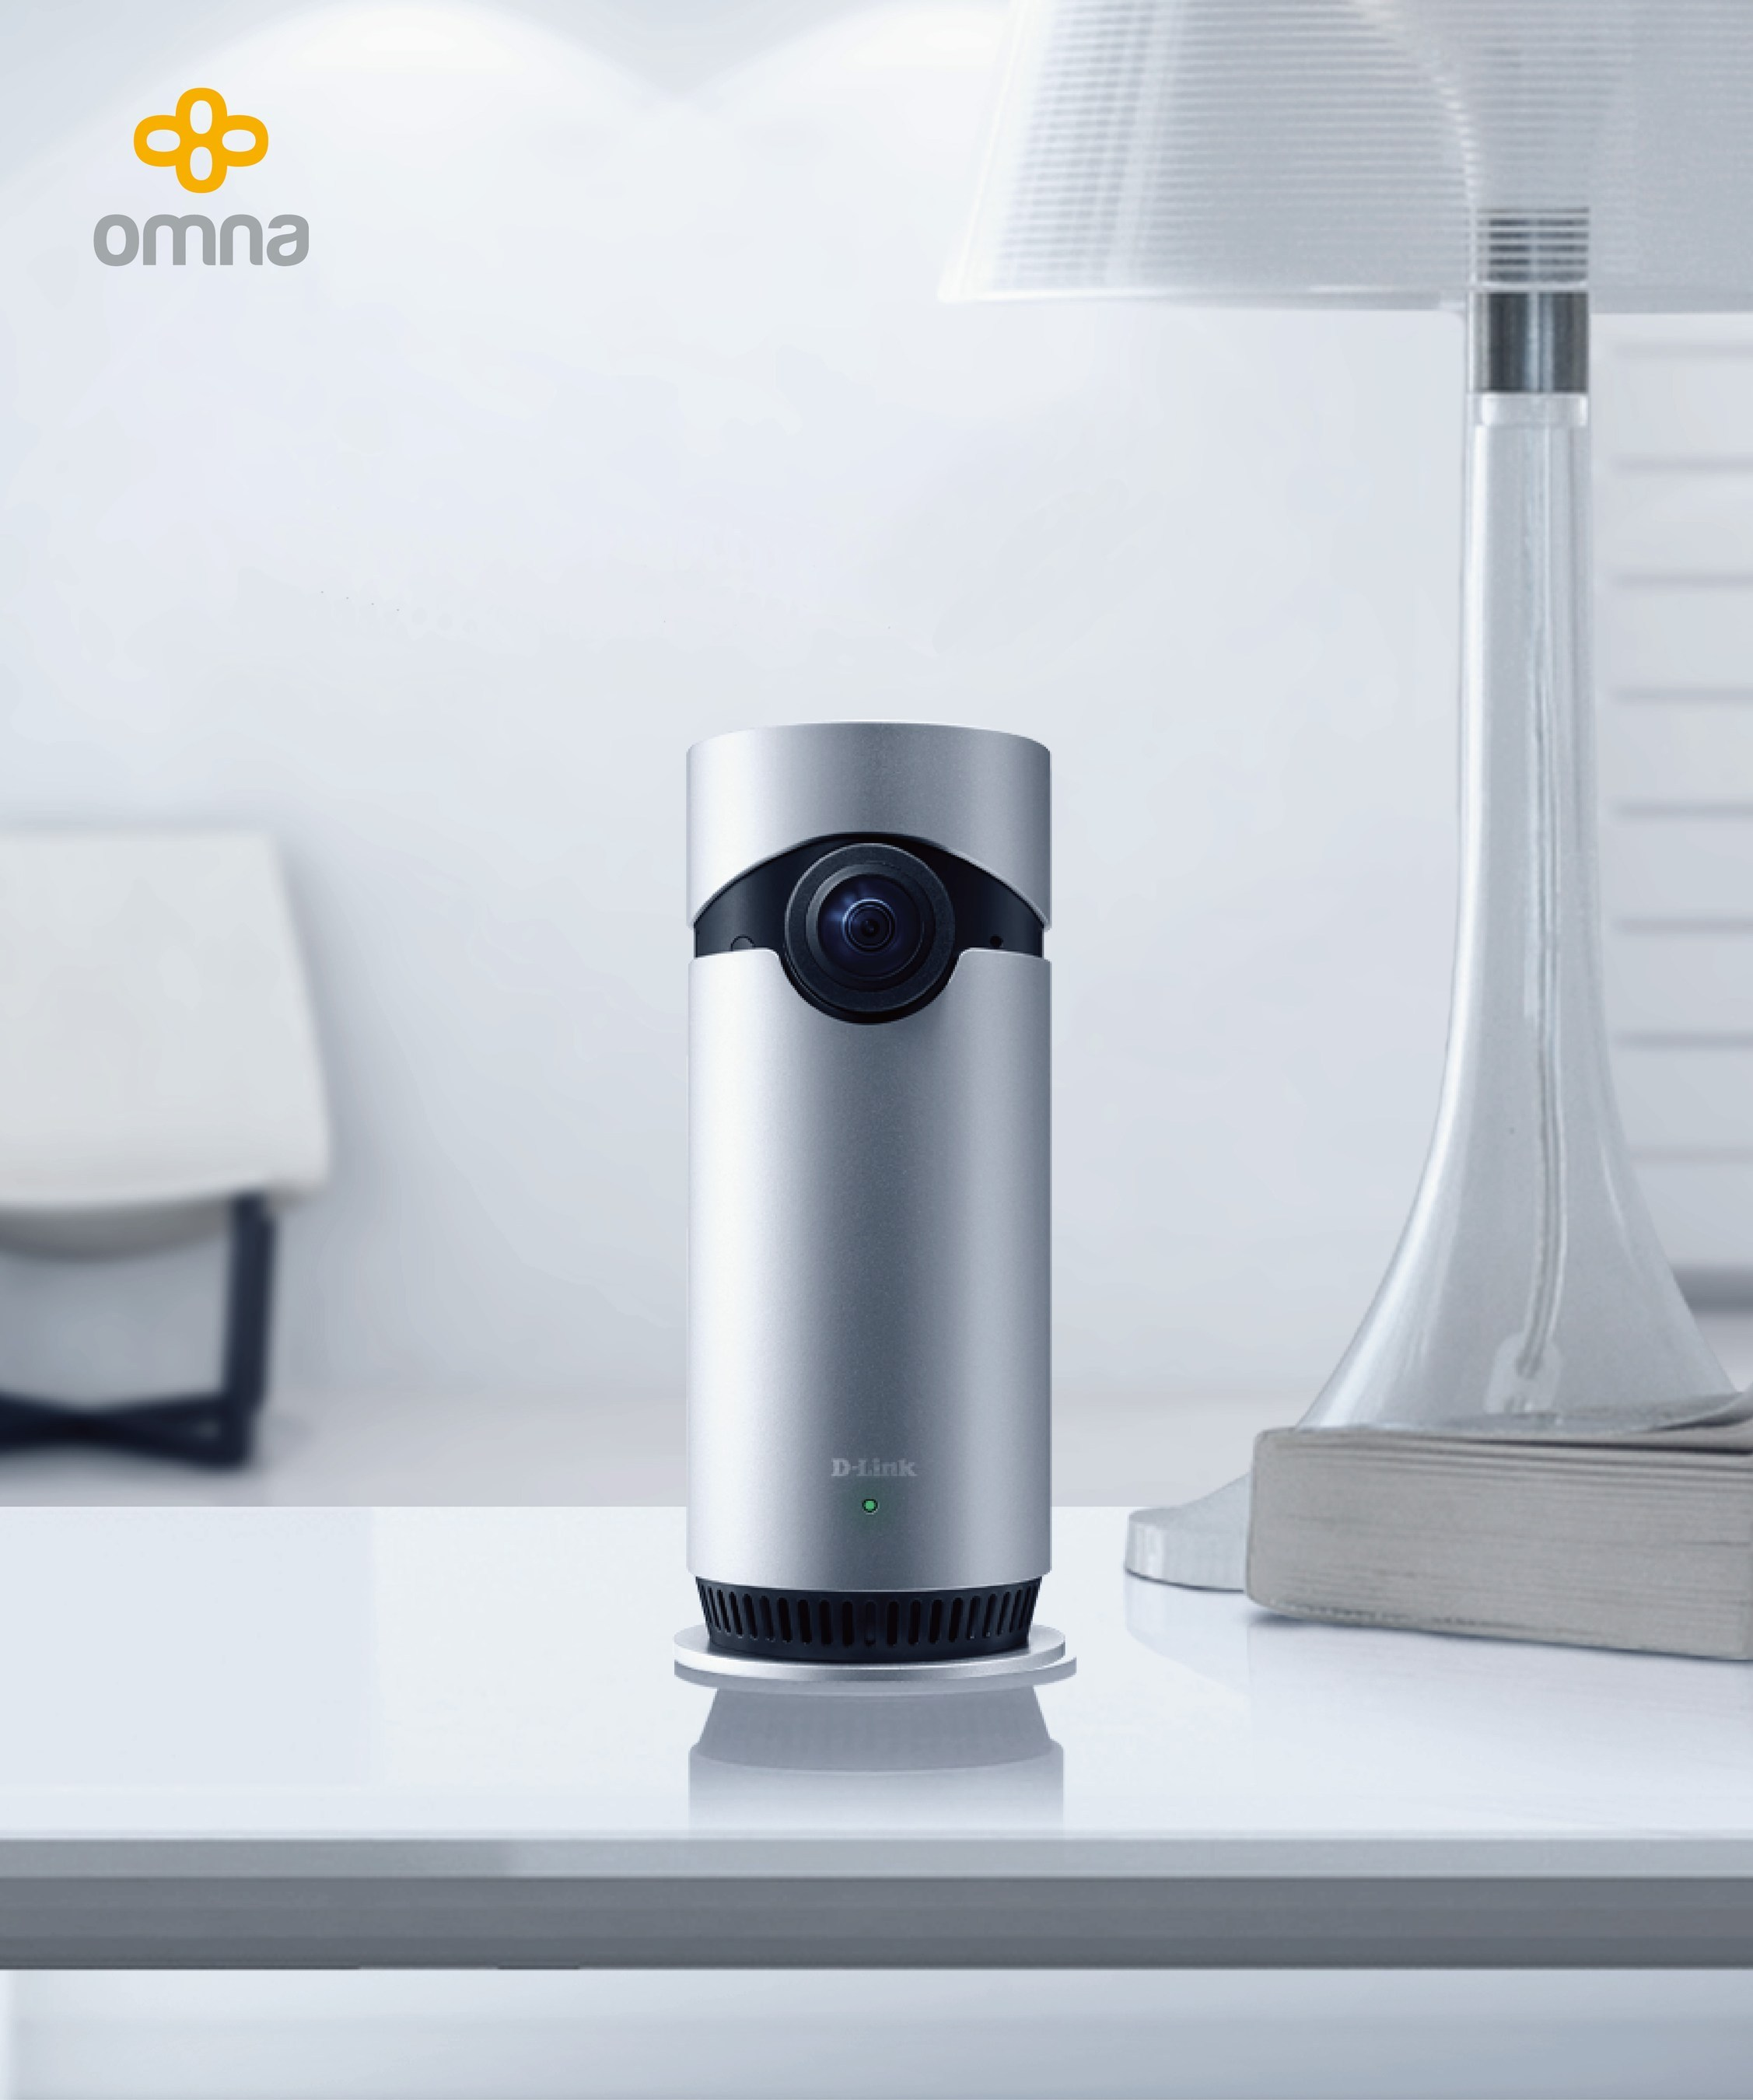 Modojo | CES 2017: D-Link Omna Cam Brings Security to iOS and Apple TV